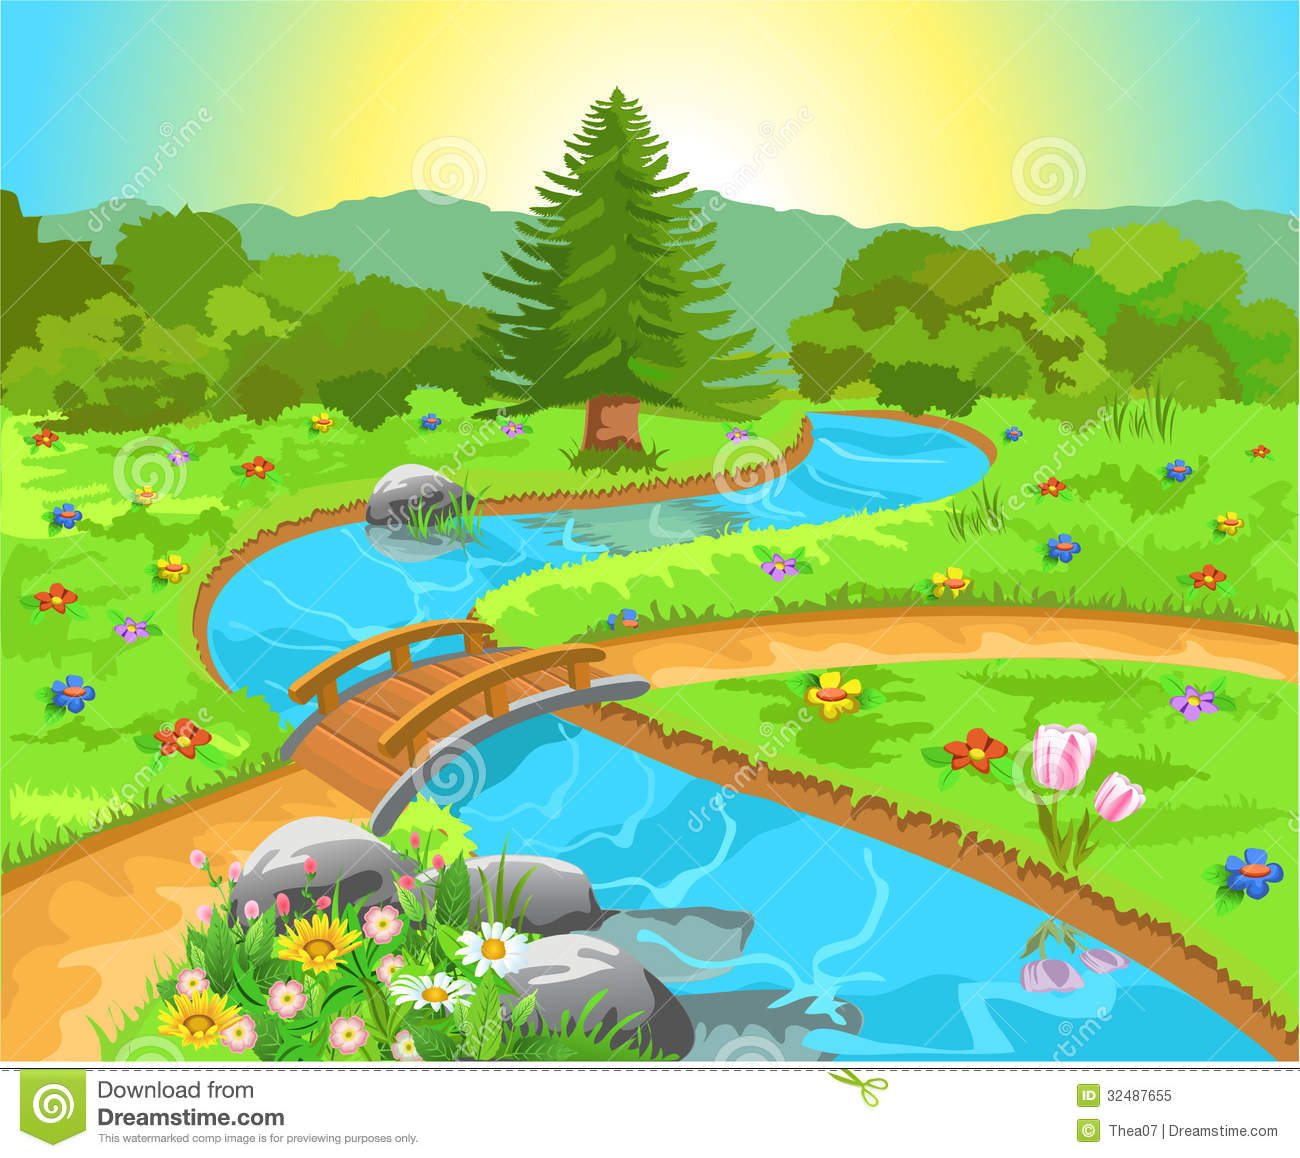 Nature clipart images image royalty free stock 37+ Nature Clipart | ClipartLook image royalty free stock